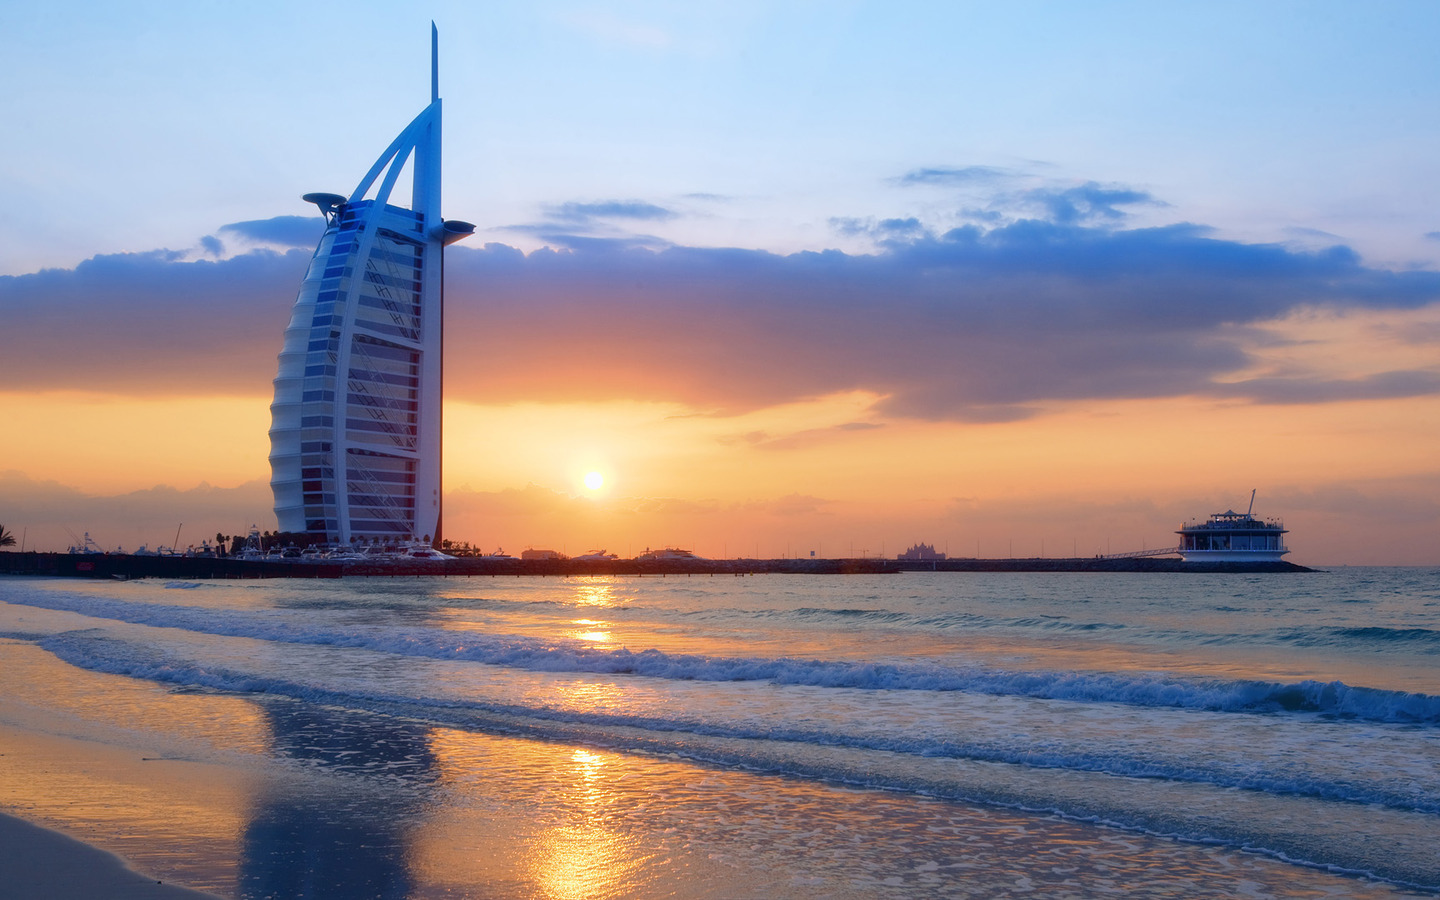 Burj al arab wallpapers pictures images - Burj al arab wallpaper iphone ...